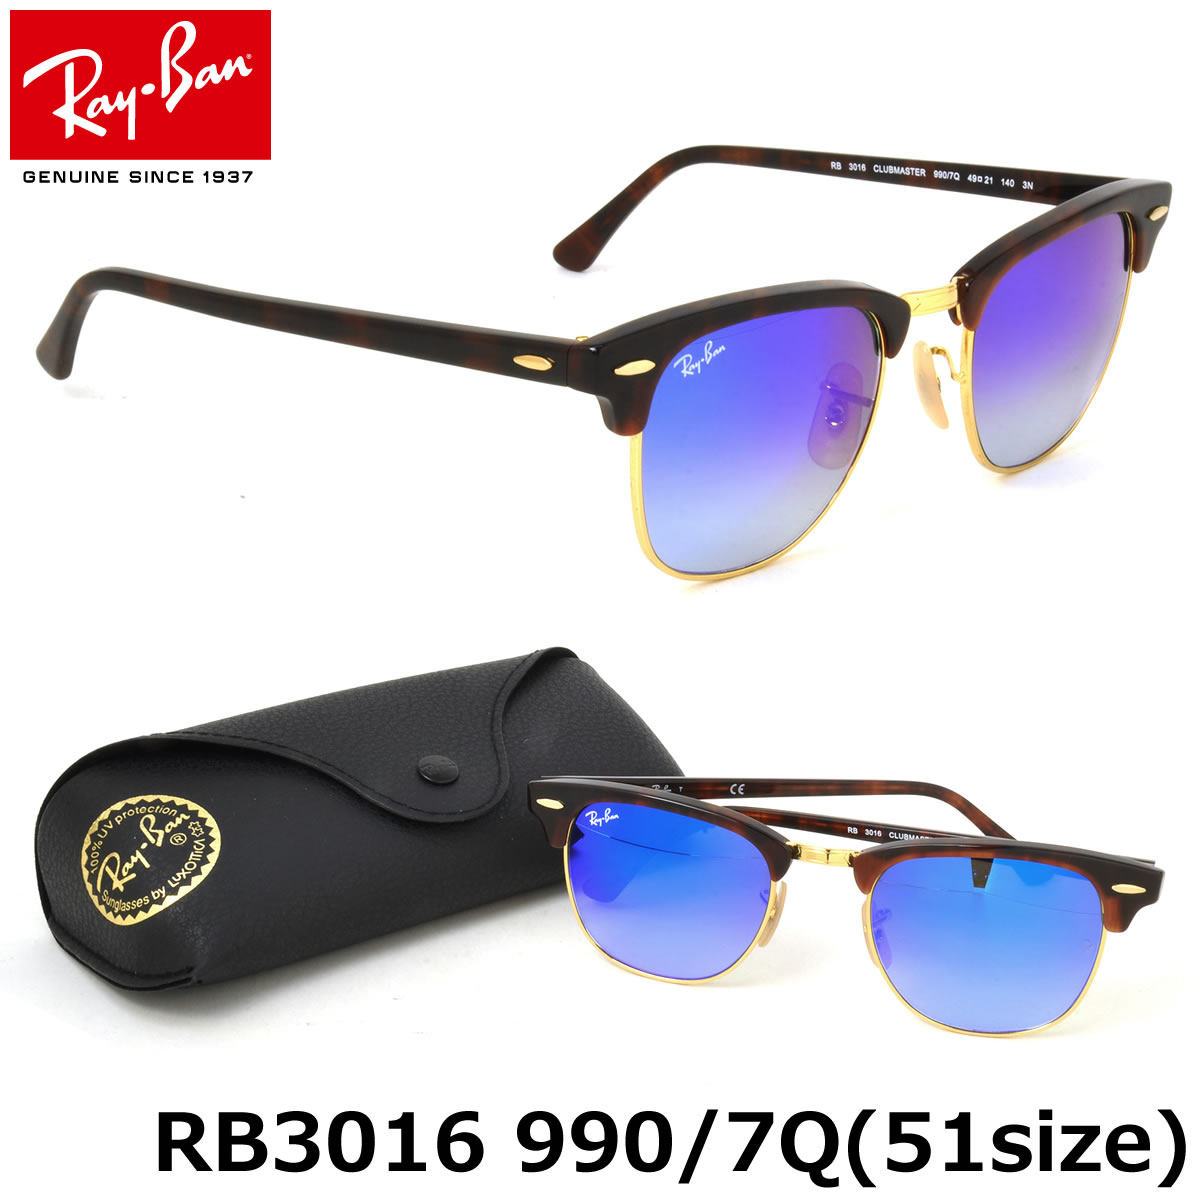 dcf46689dd97 RB3016 CLUBMASTER (club master) is a model for 09 years of the THE ICONS  collection. The club master added a taste of Ray-Ban to the material by the  design ...